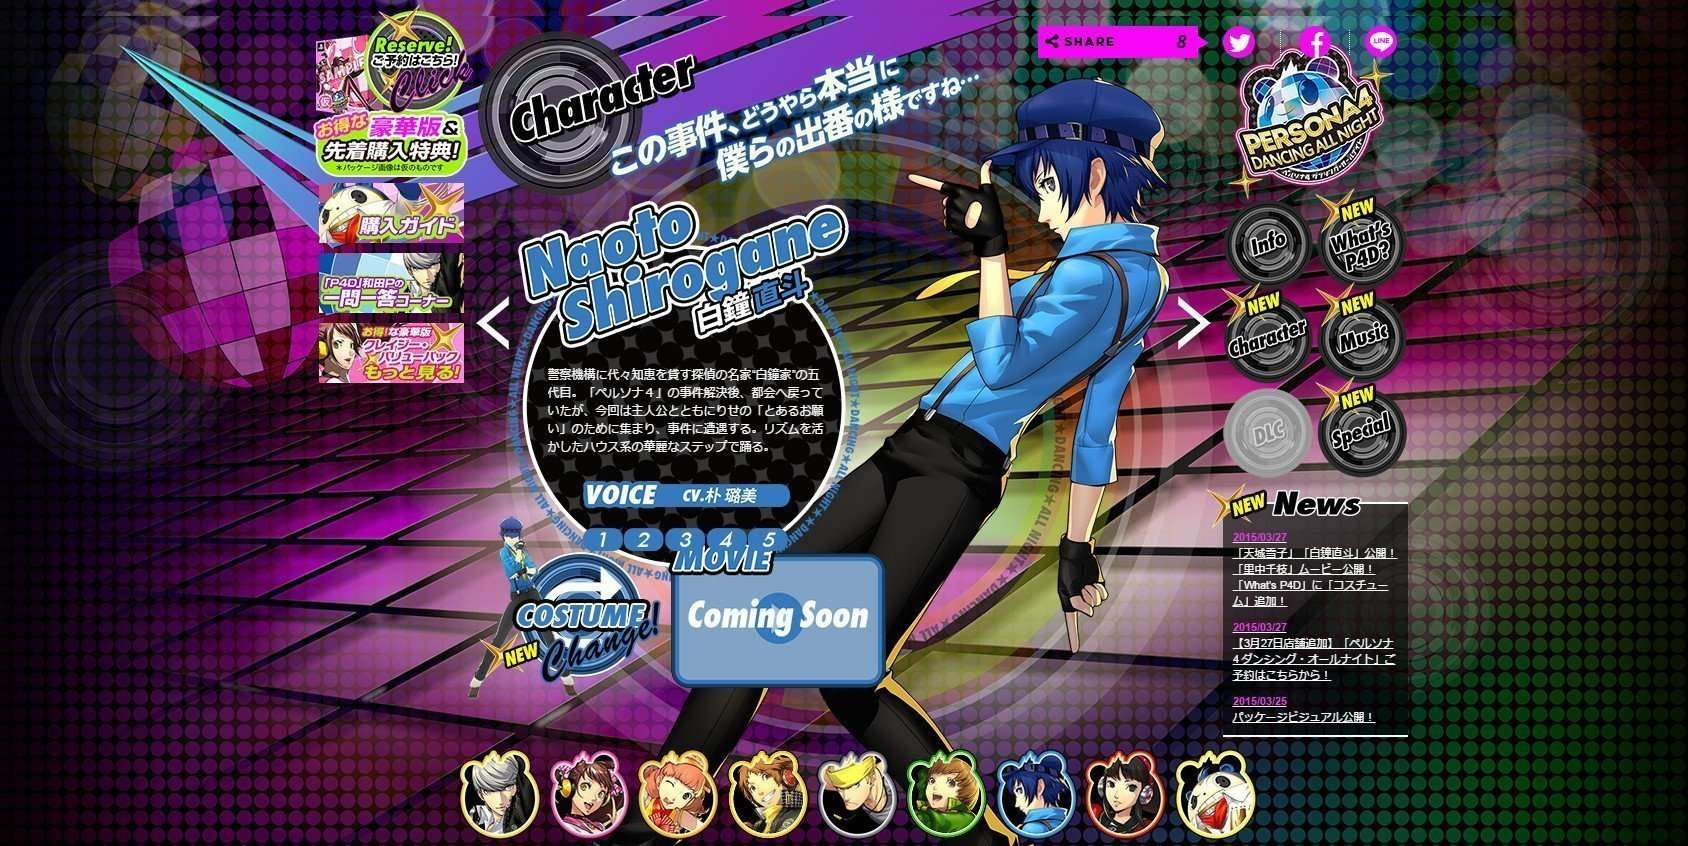 Persona 4 Dancing All Night - Naoto Character Page